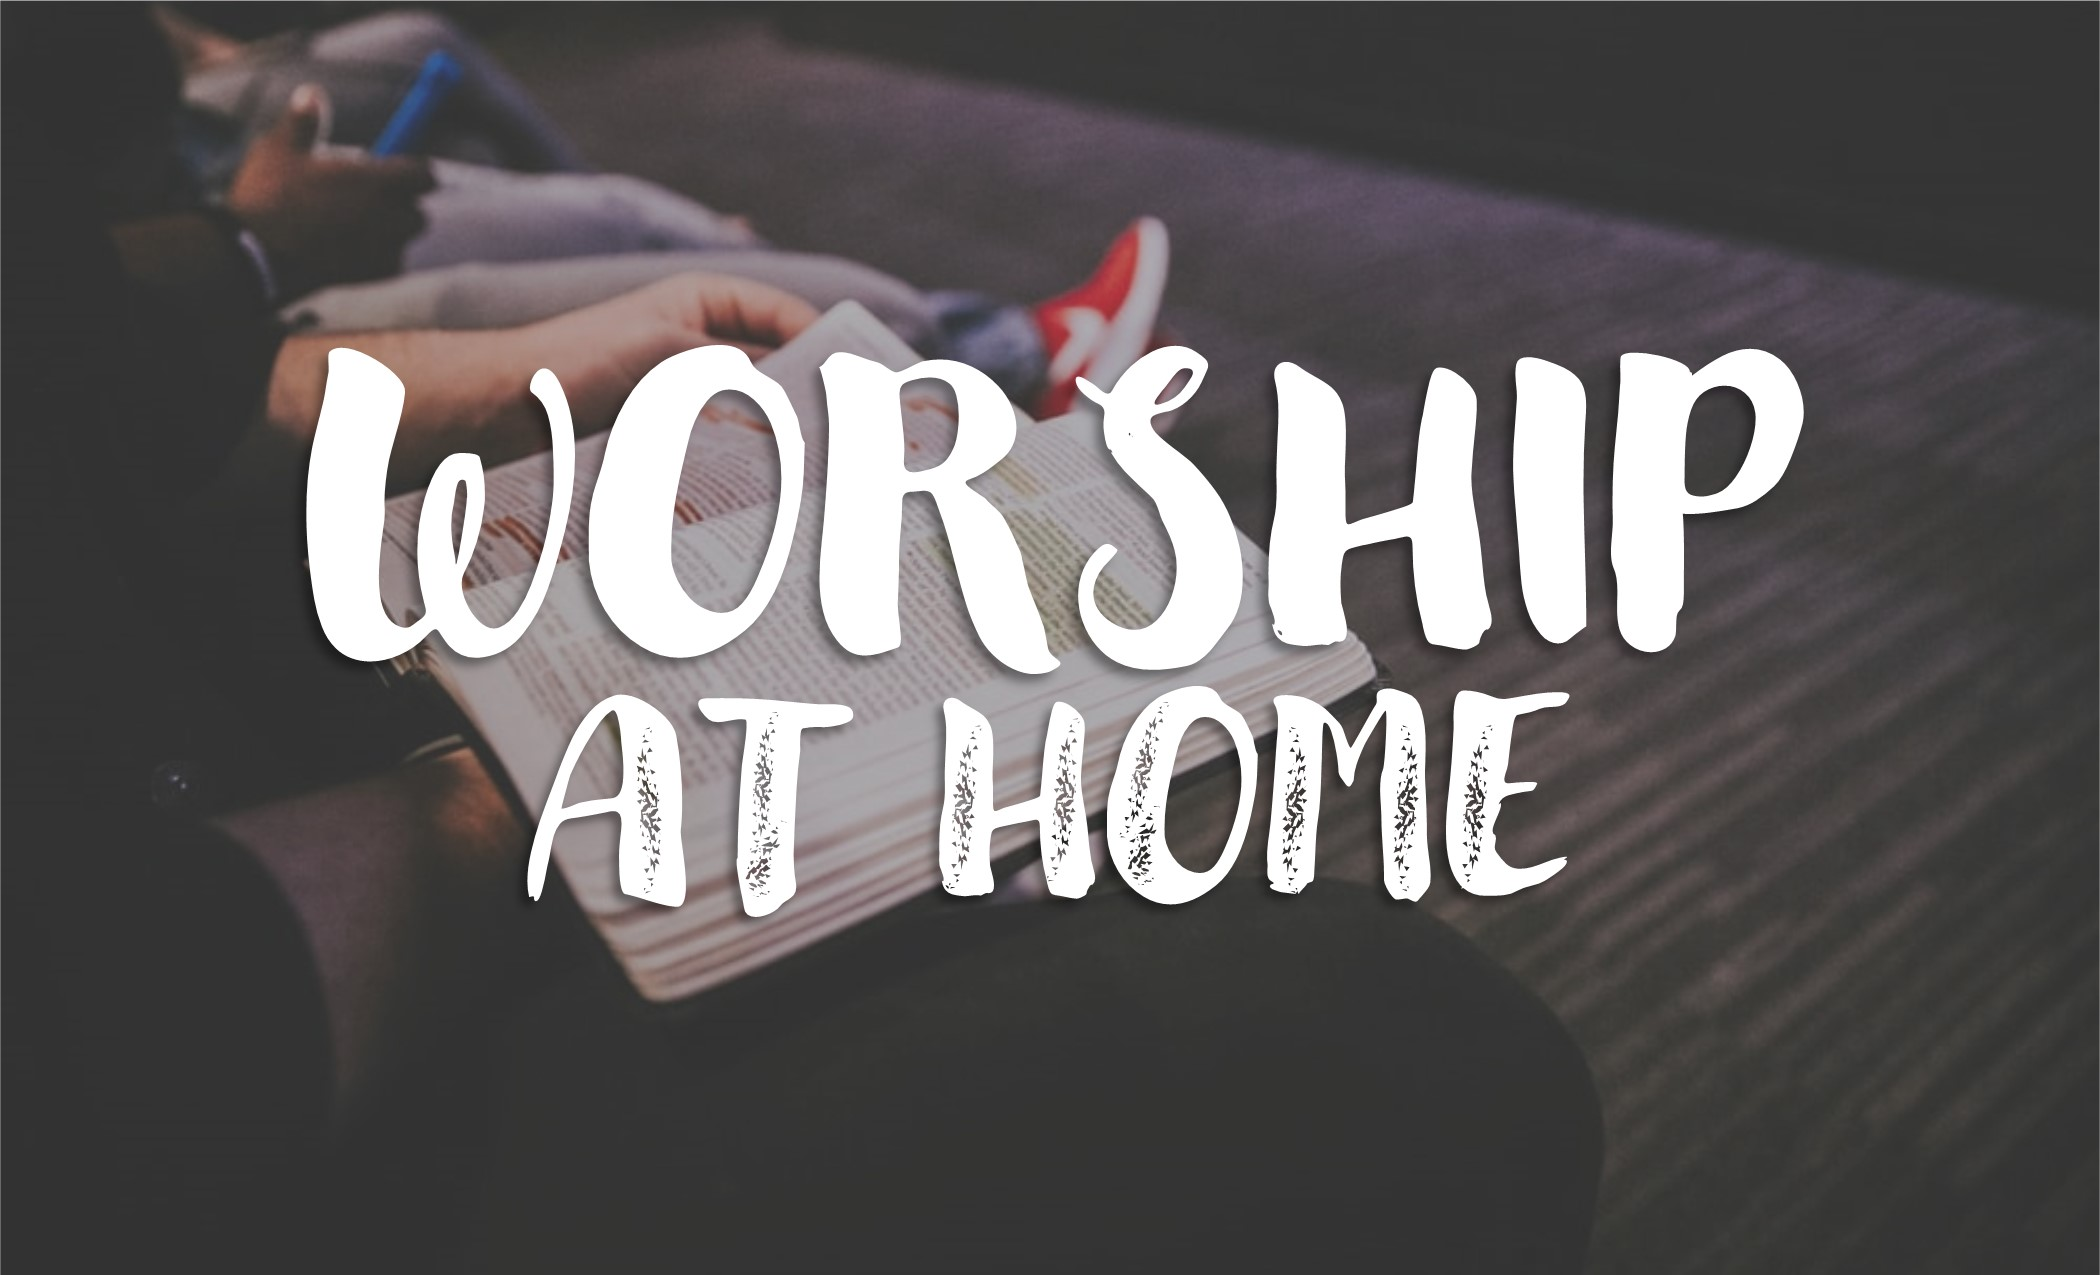 Worship at home image